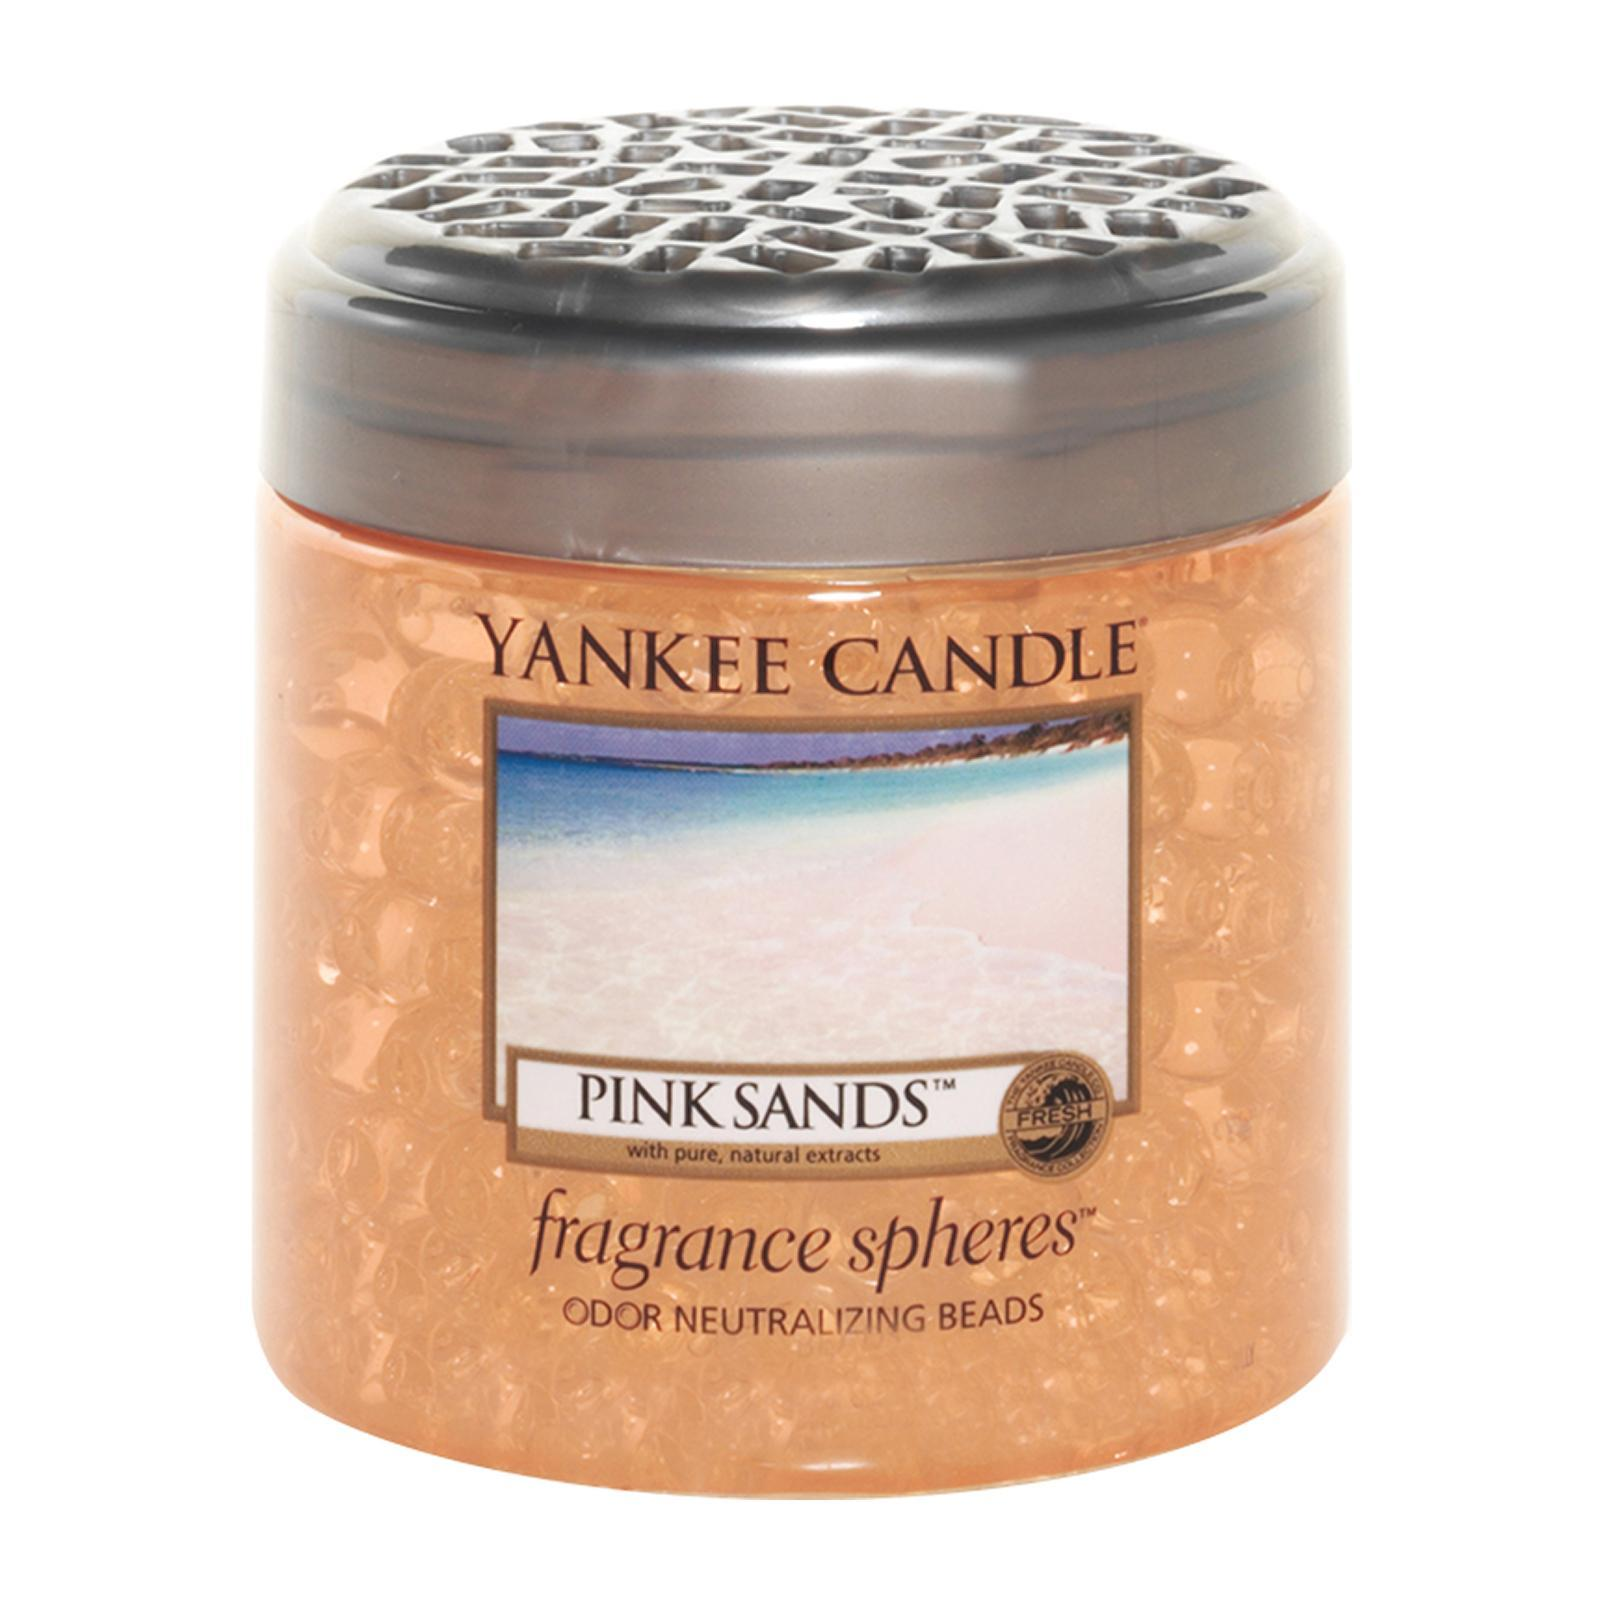 Yankee Candle Pink Sands Gel Beads